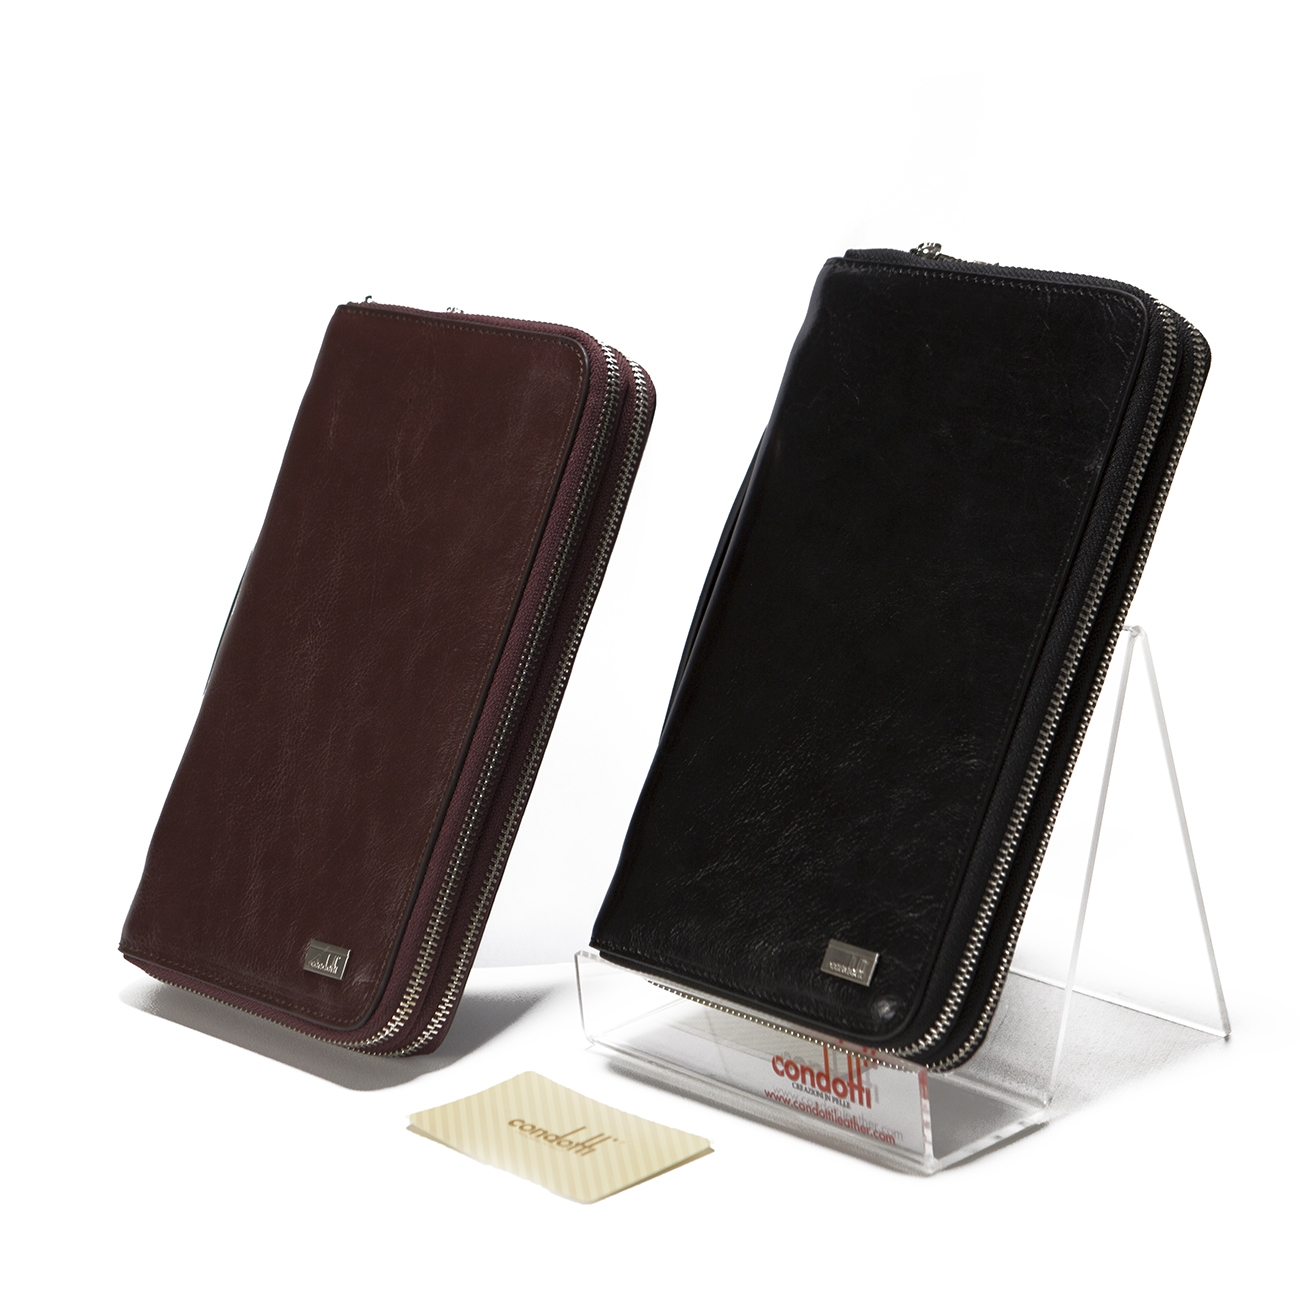 Leather Long Wallet - CODE 142-1369